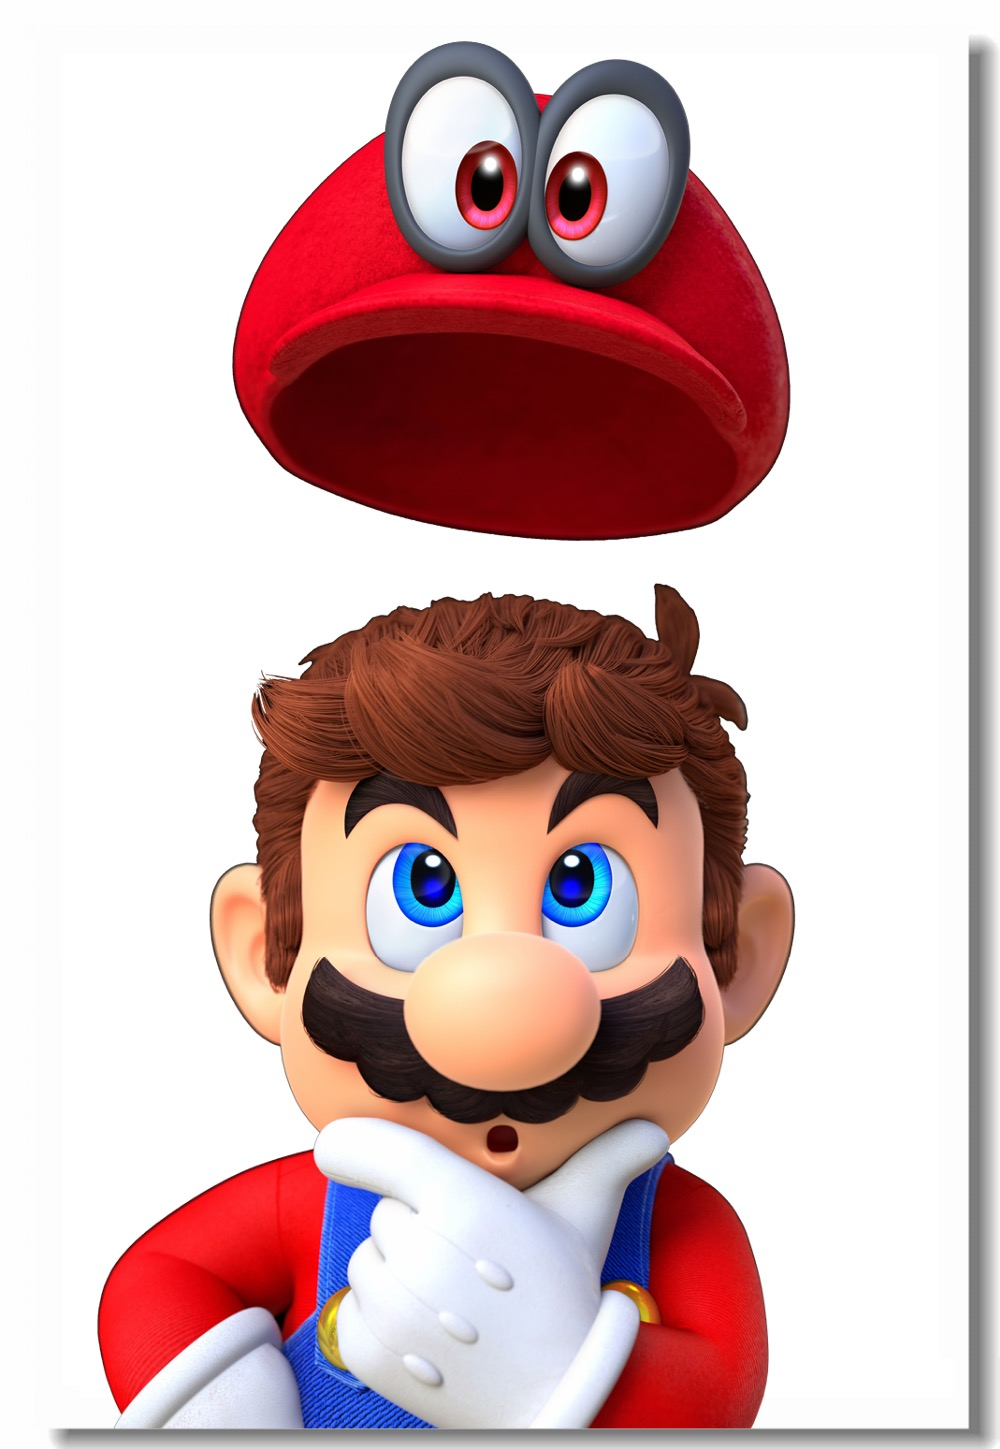 Us 5 43 32 Off Custom Canvas Wall Decals Super Mario Odyssey Poster Mario Bros Wall Sticker Mural Living Wallpaper Kids Room Decorations 0506 In